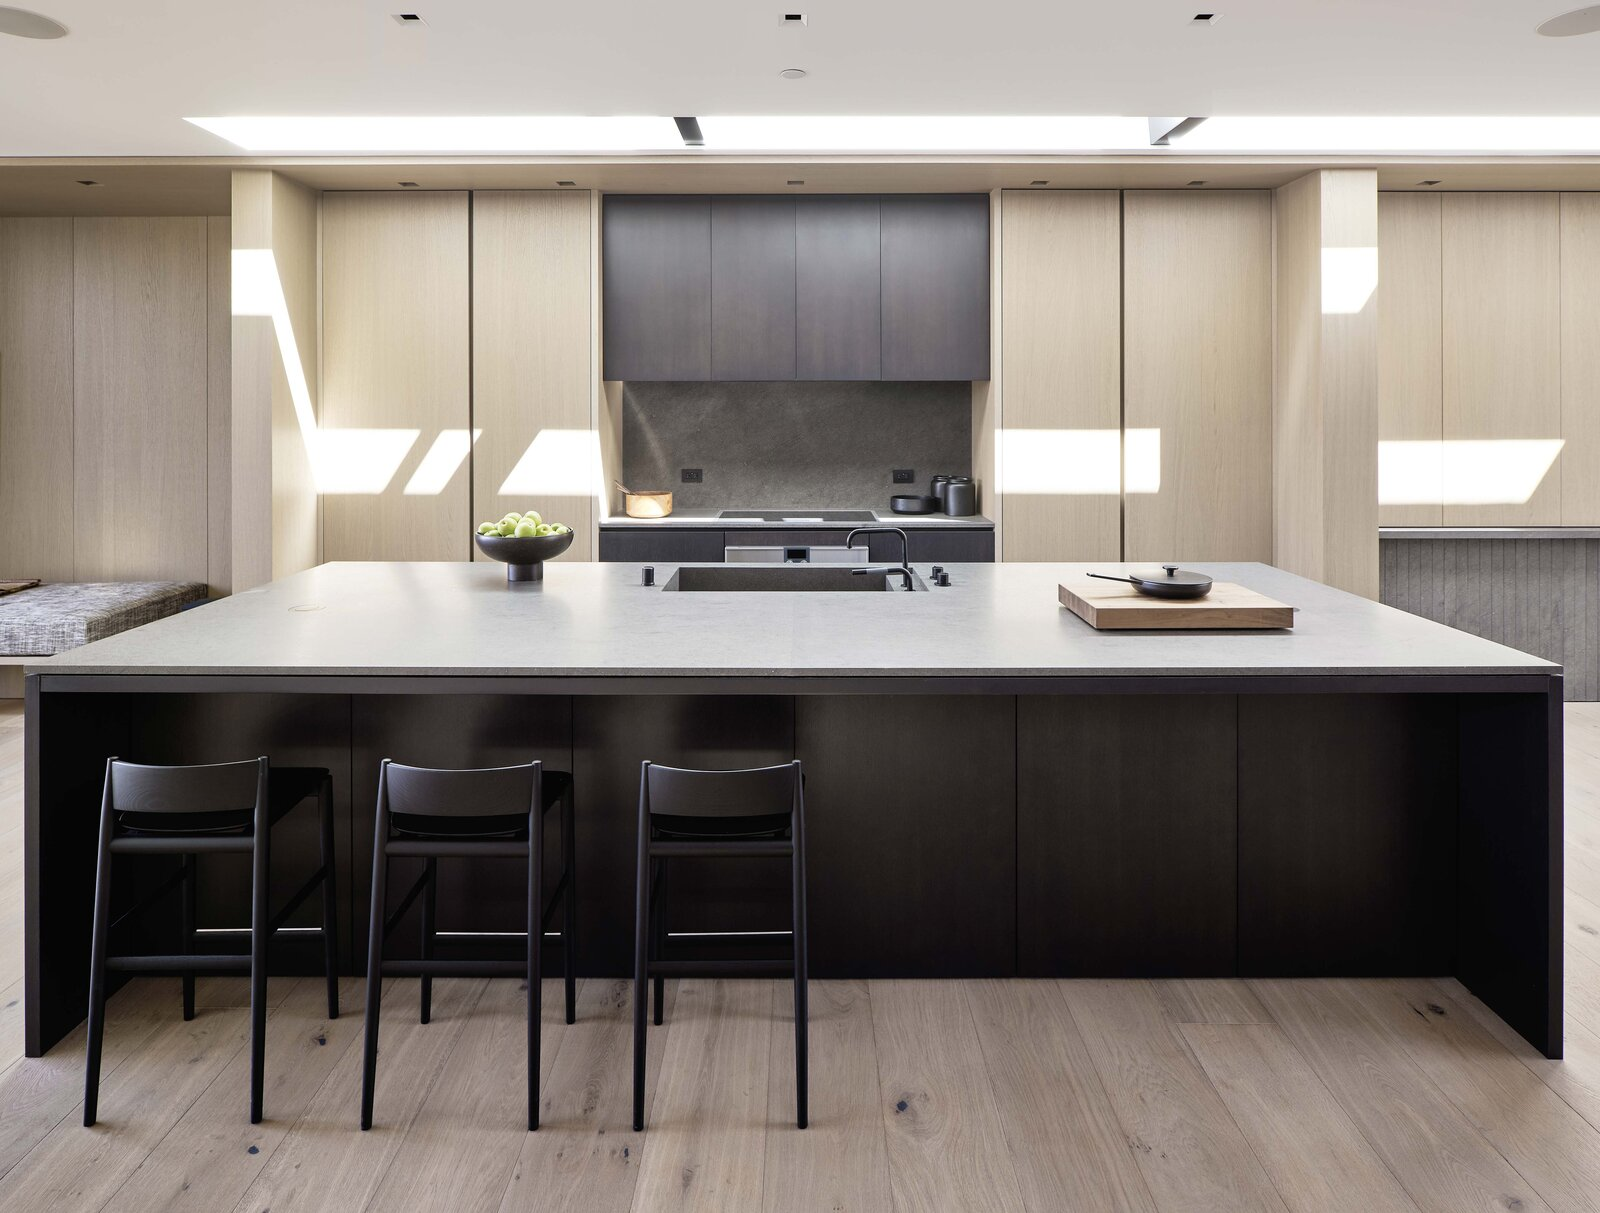 The streamlined kitchen cabinetry is accented by Gaggenau appliances and Basaltina stone countertops. Another skylight runs above the kitchen.  Photo 8 of 19 in This Radiant San Francisco Residence Hits the Market at $6.8M